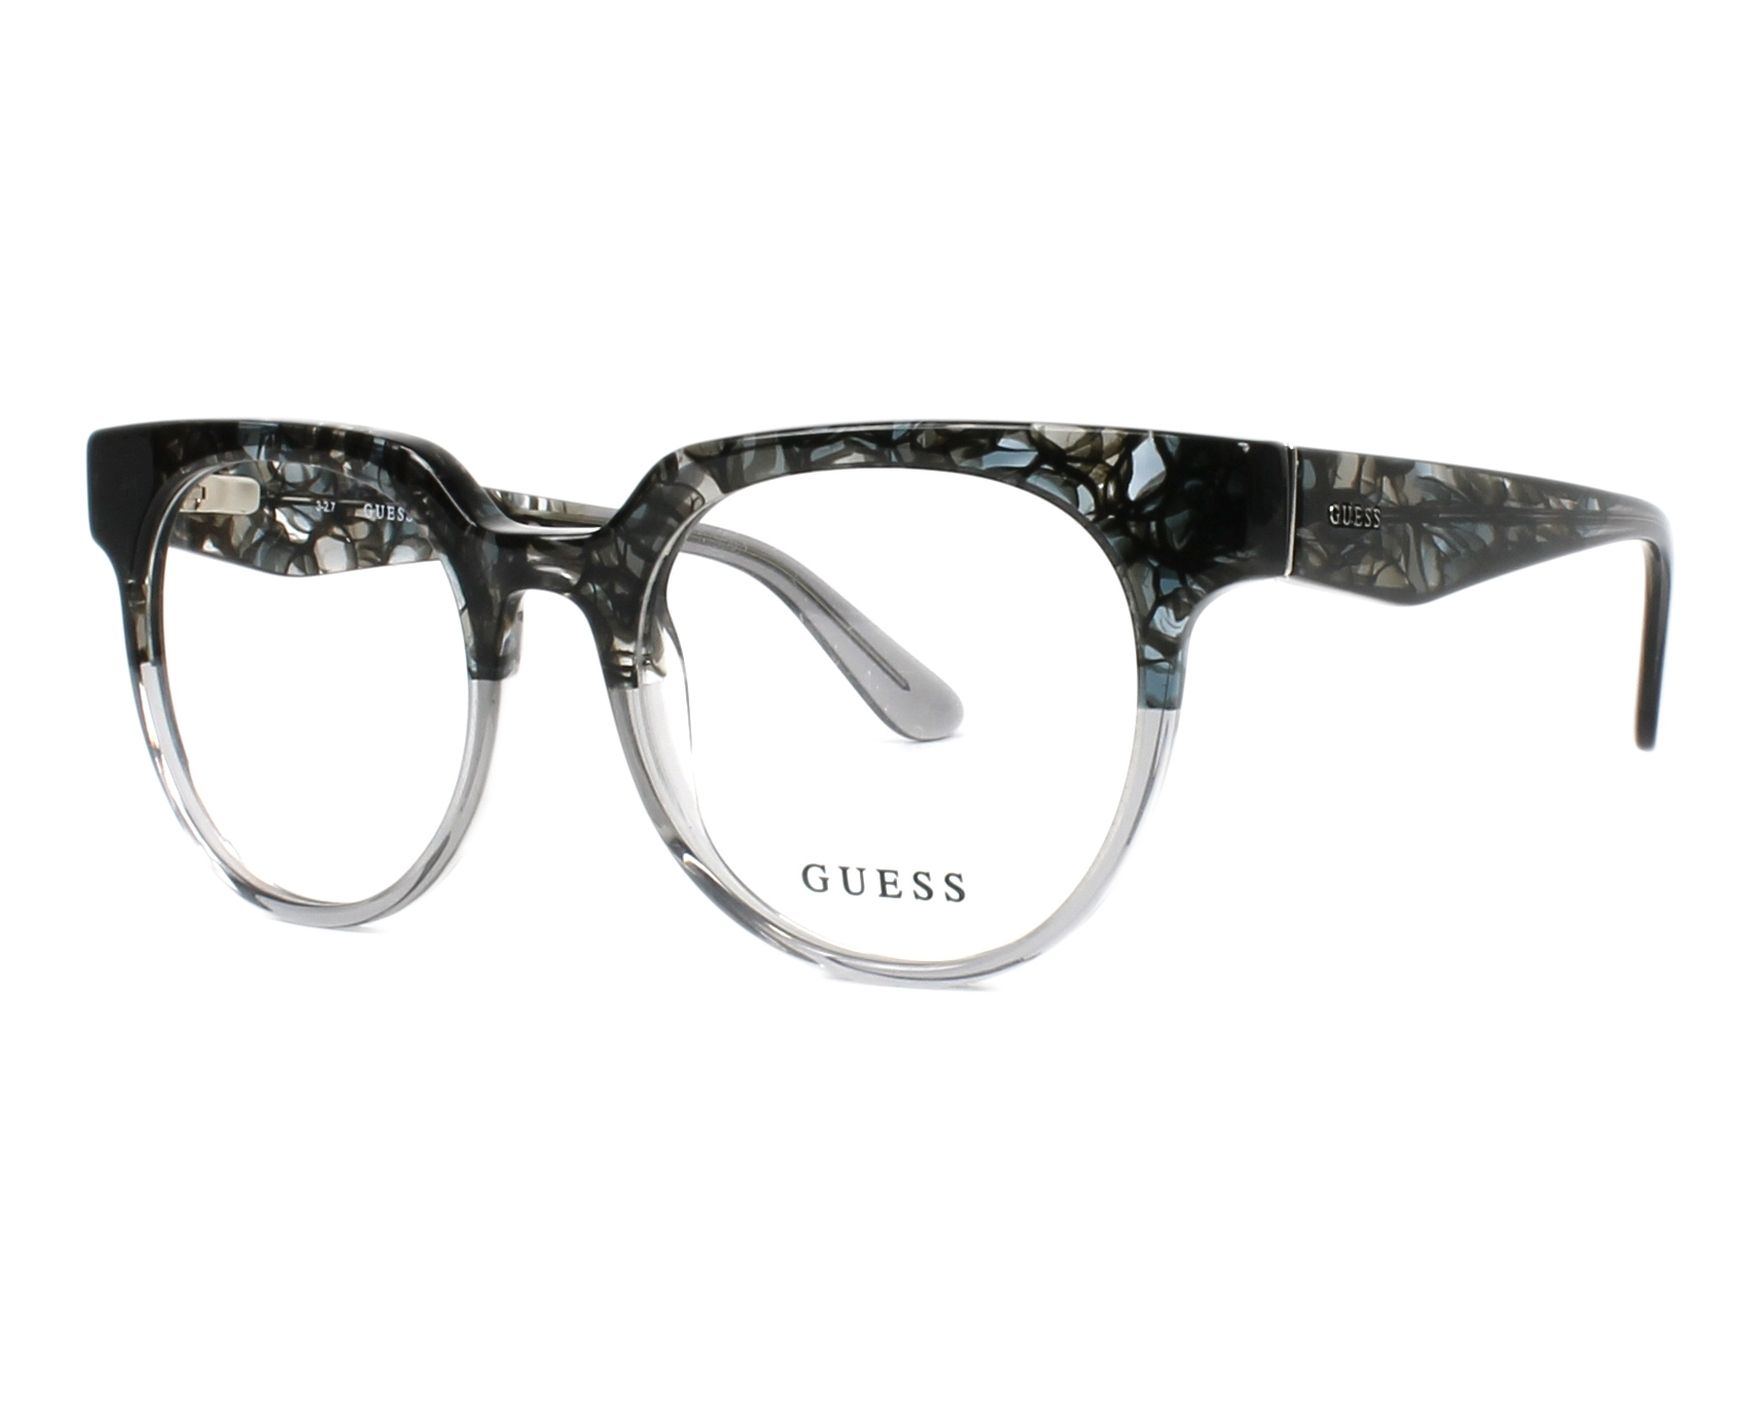 eyeglasses Guess GU-2652 020 50-18 Black Crystal profile view